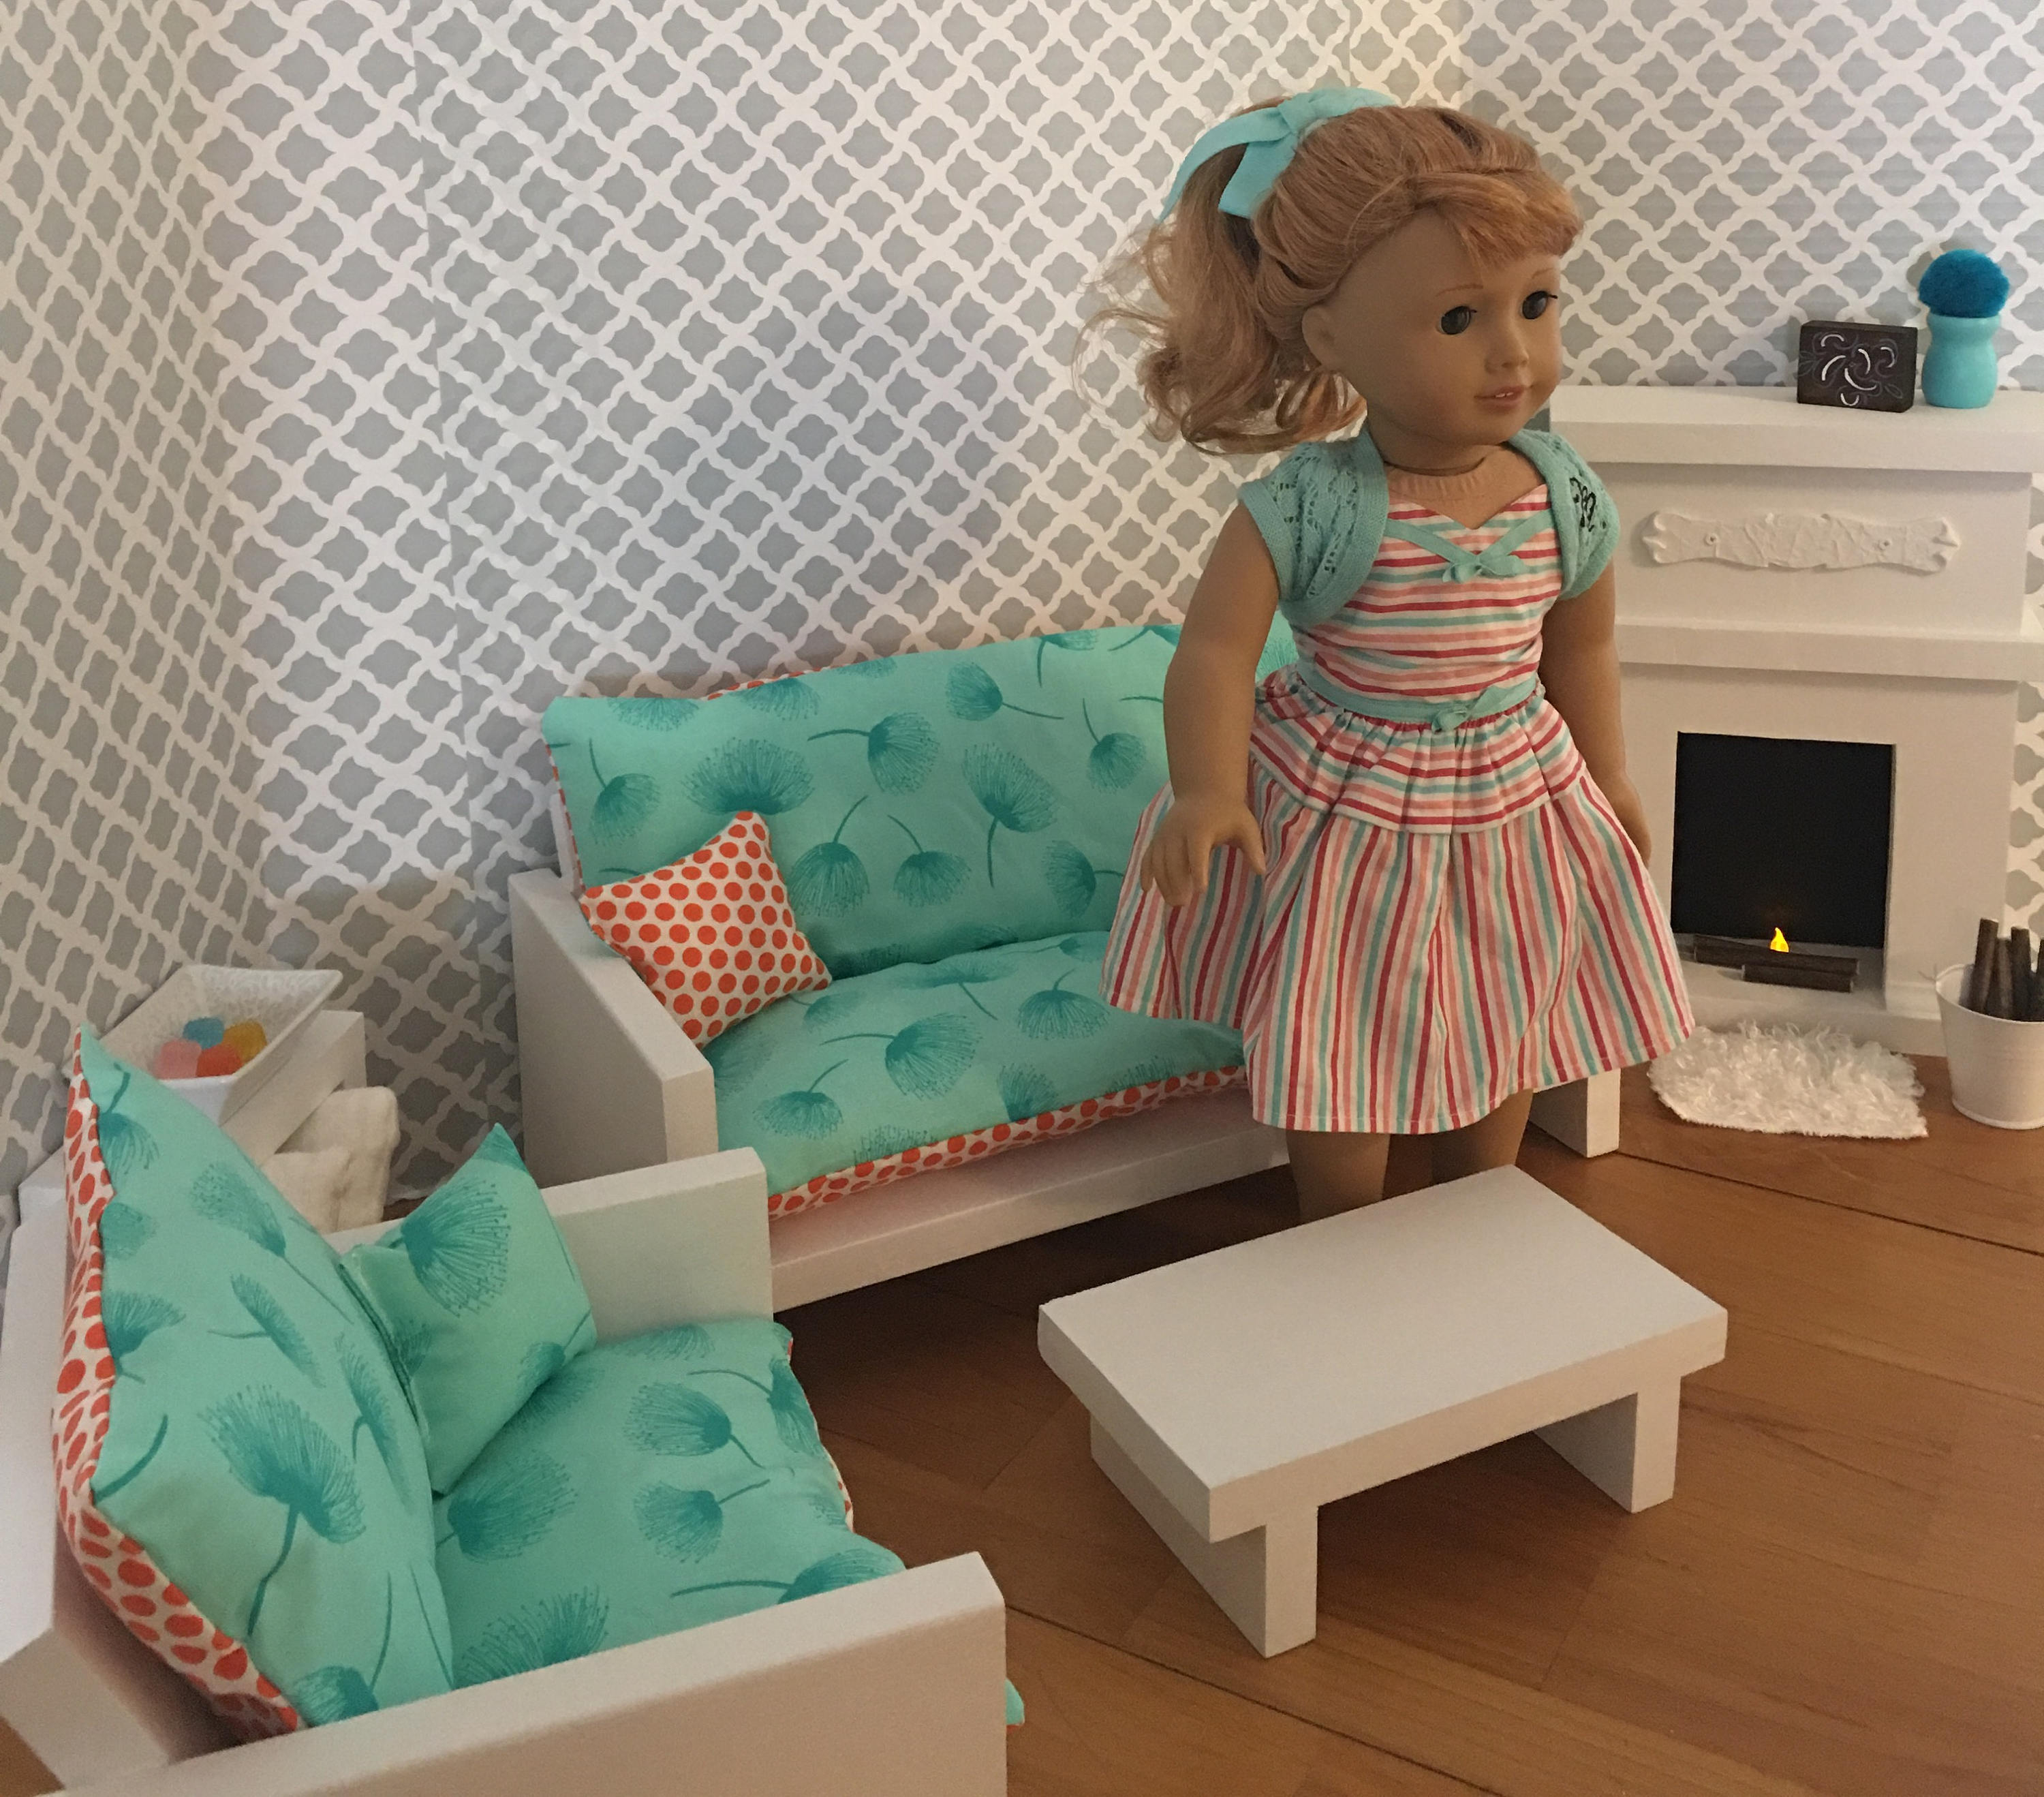 Living Room Set For 18 Dolls Fits The American Girl Dolls pertaining to 18 Inch Doll Living Room Set